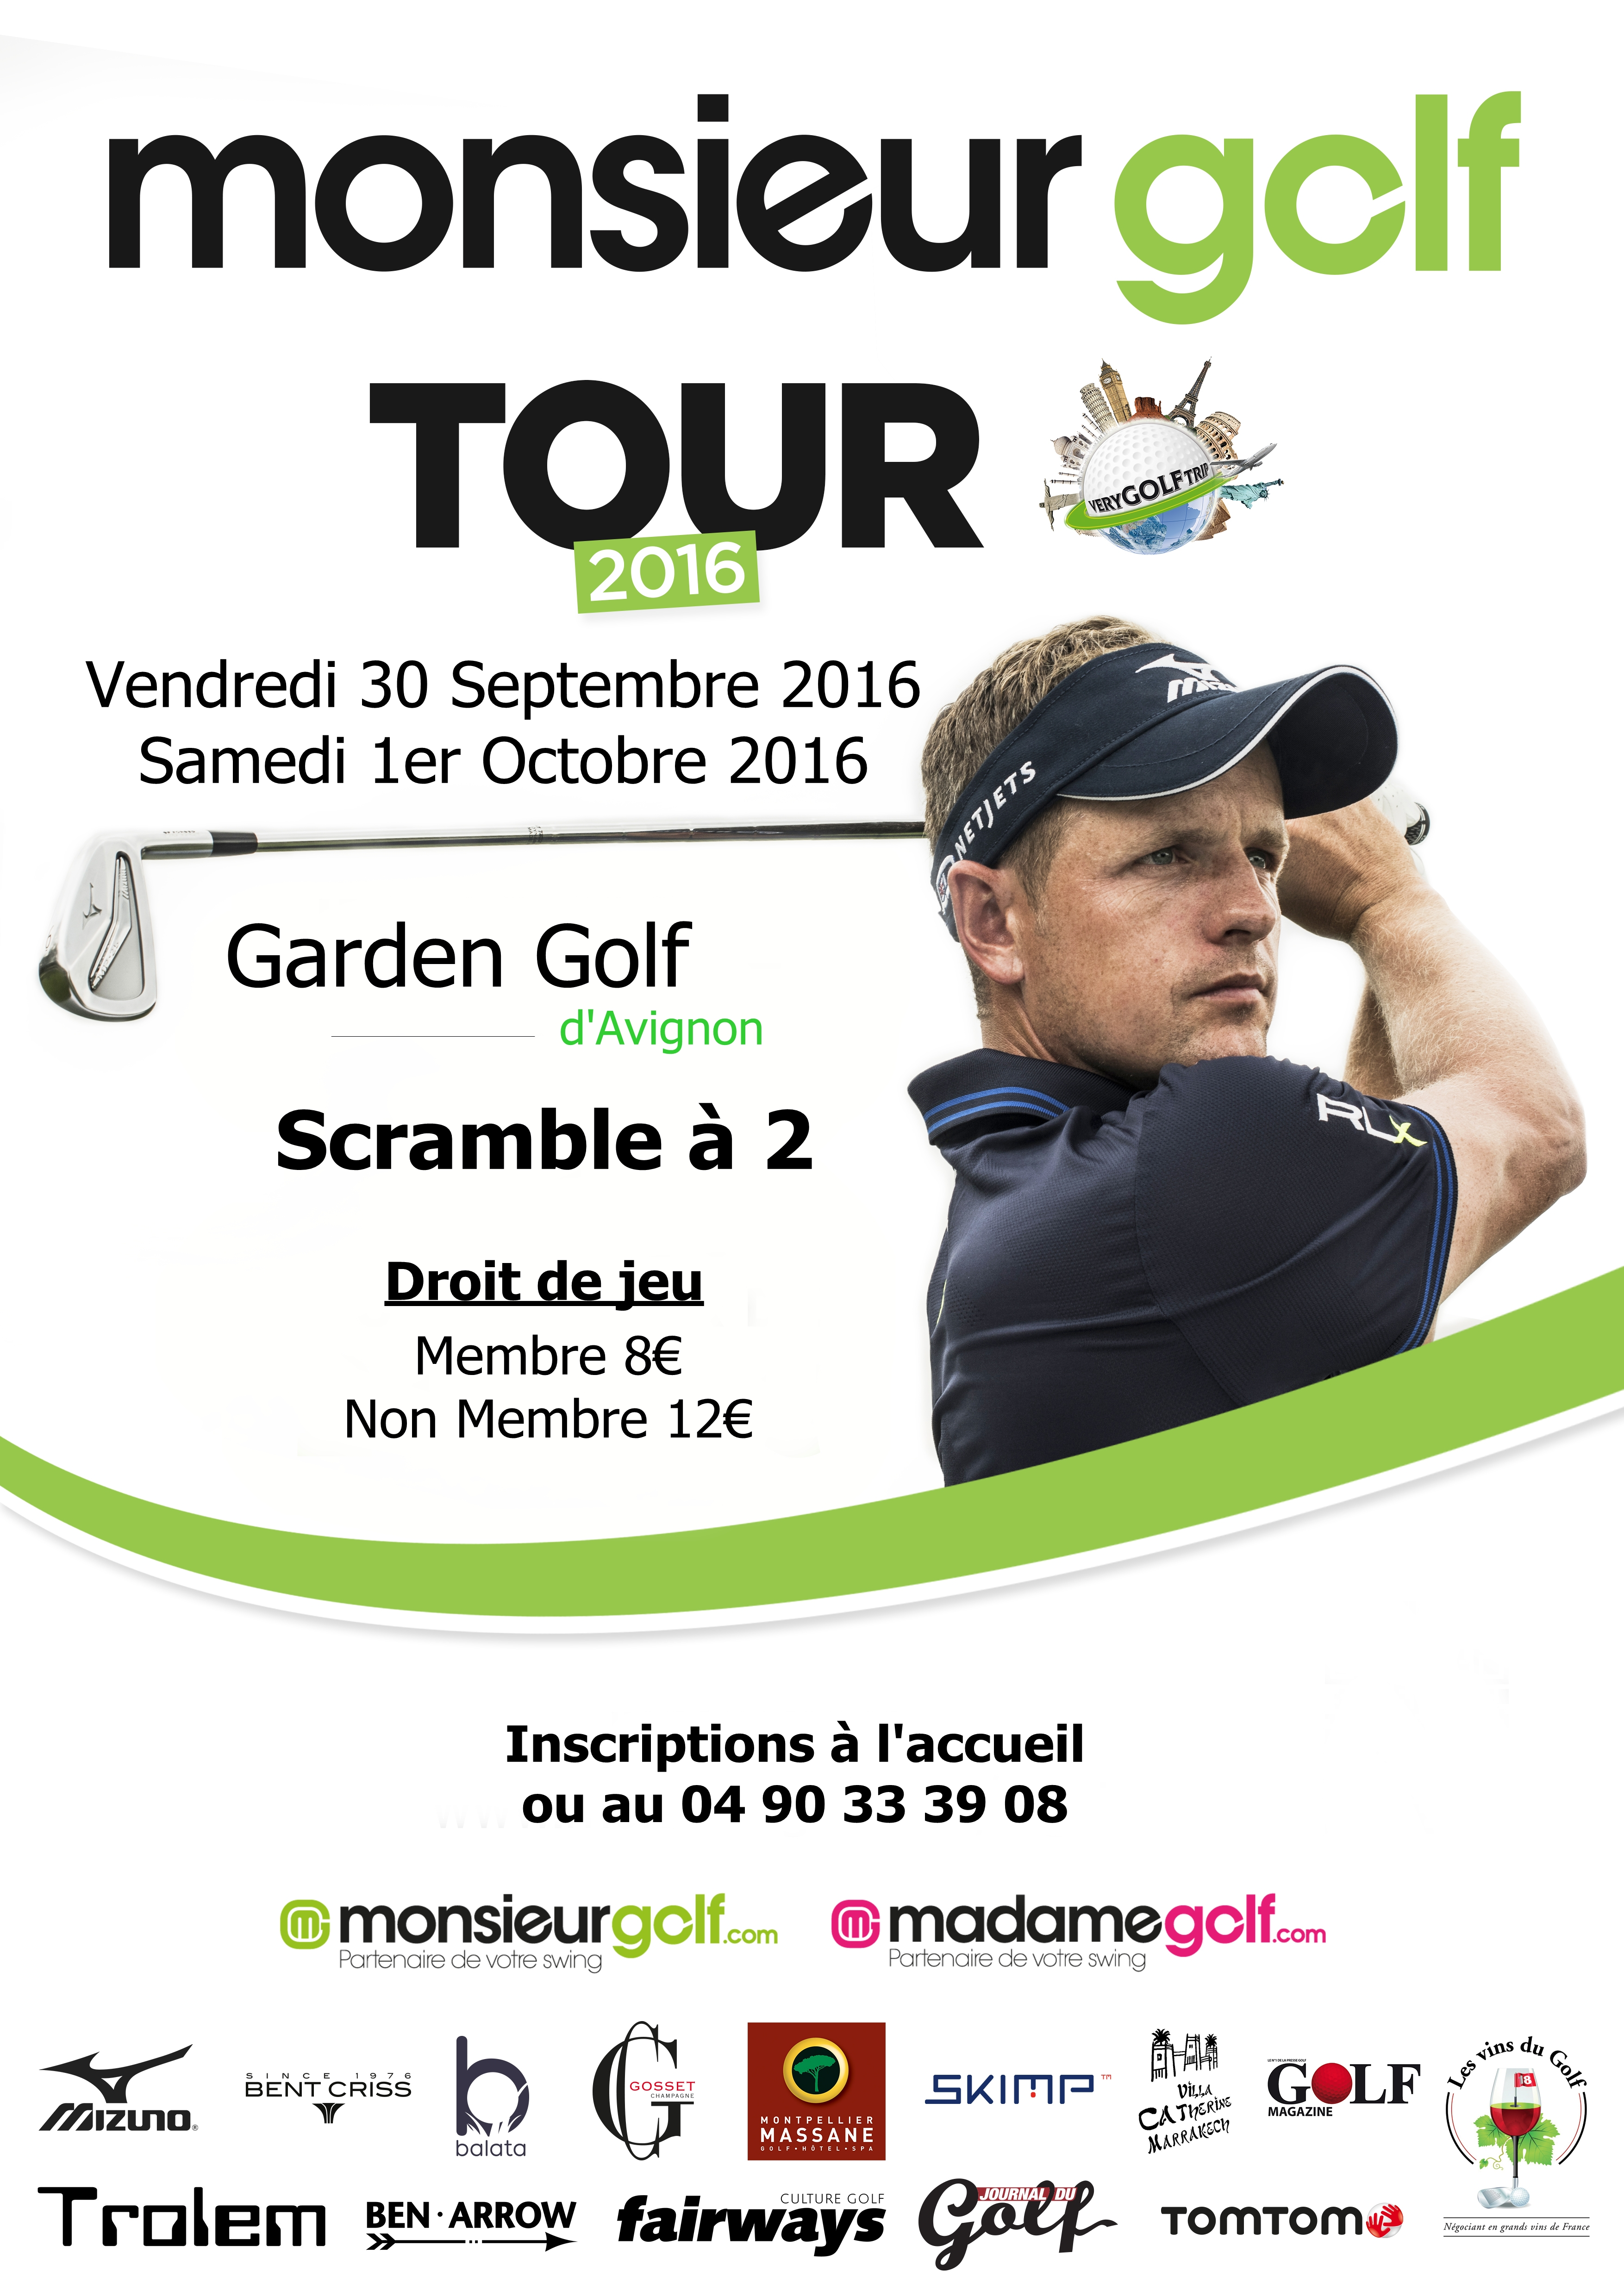 Cover of golf event named Monsieur Golf Tour